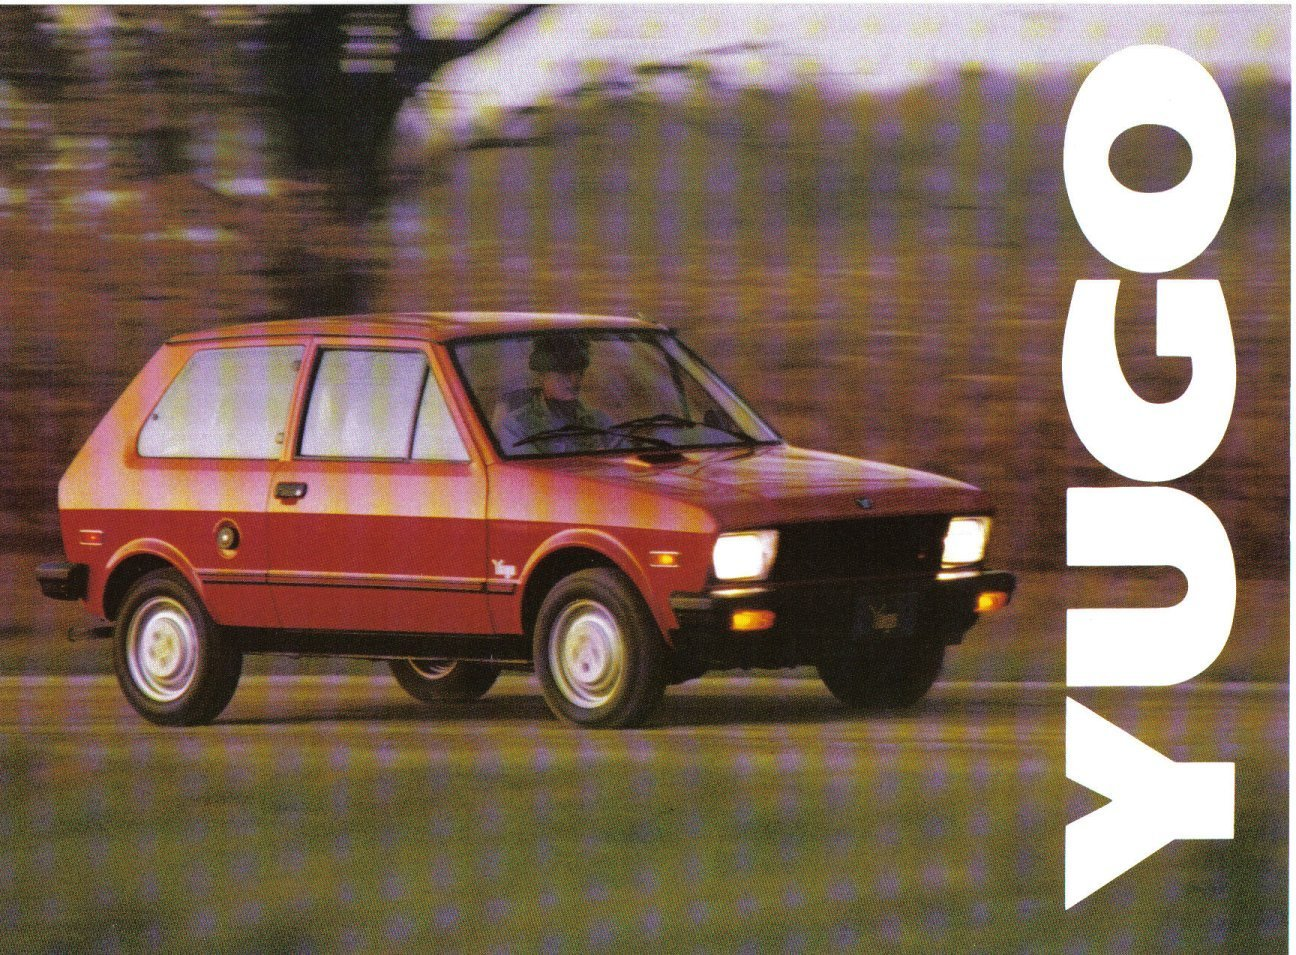 New Toyota To Resurrect Yugo Motors Wesley Chapel Toyota S Blog On This Month